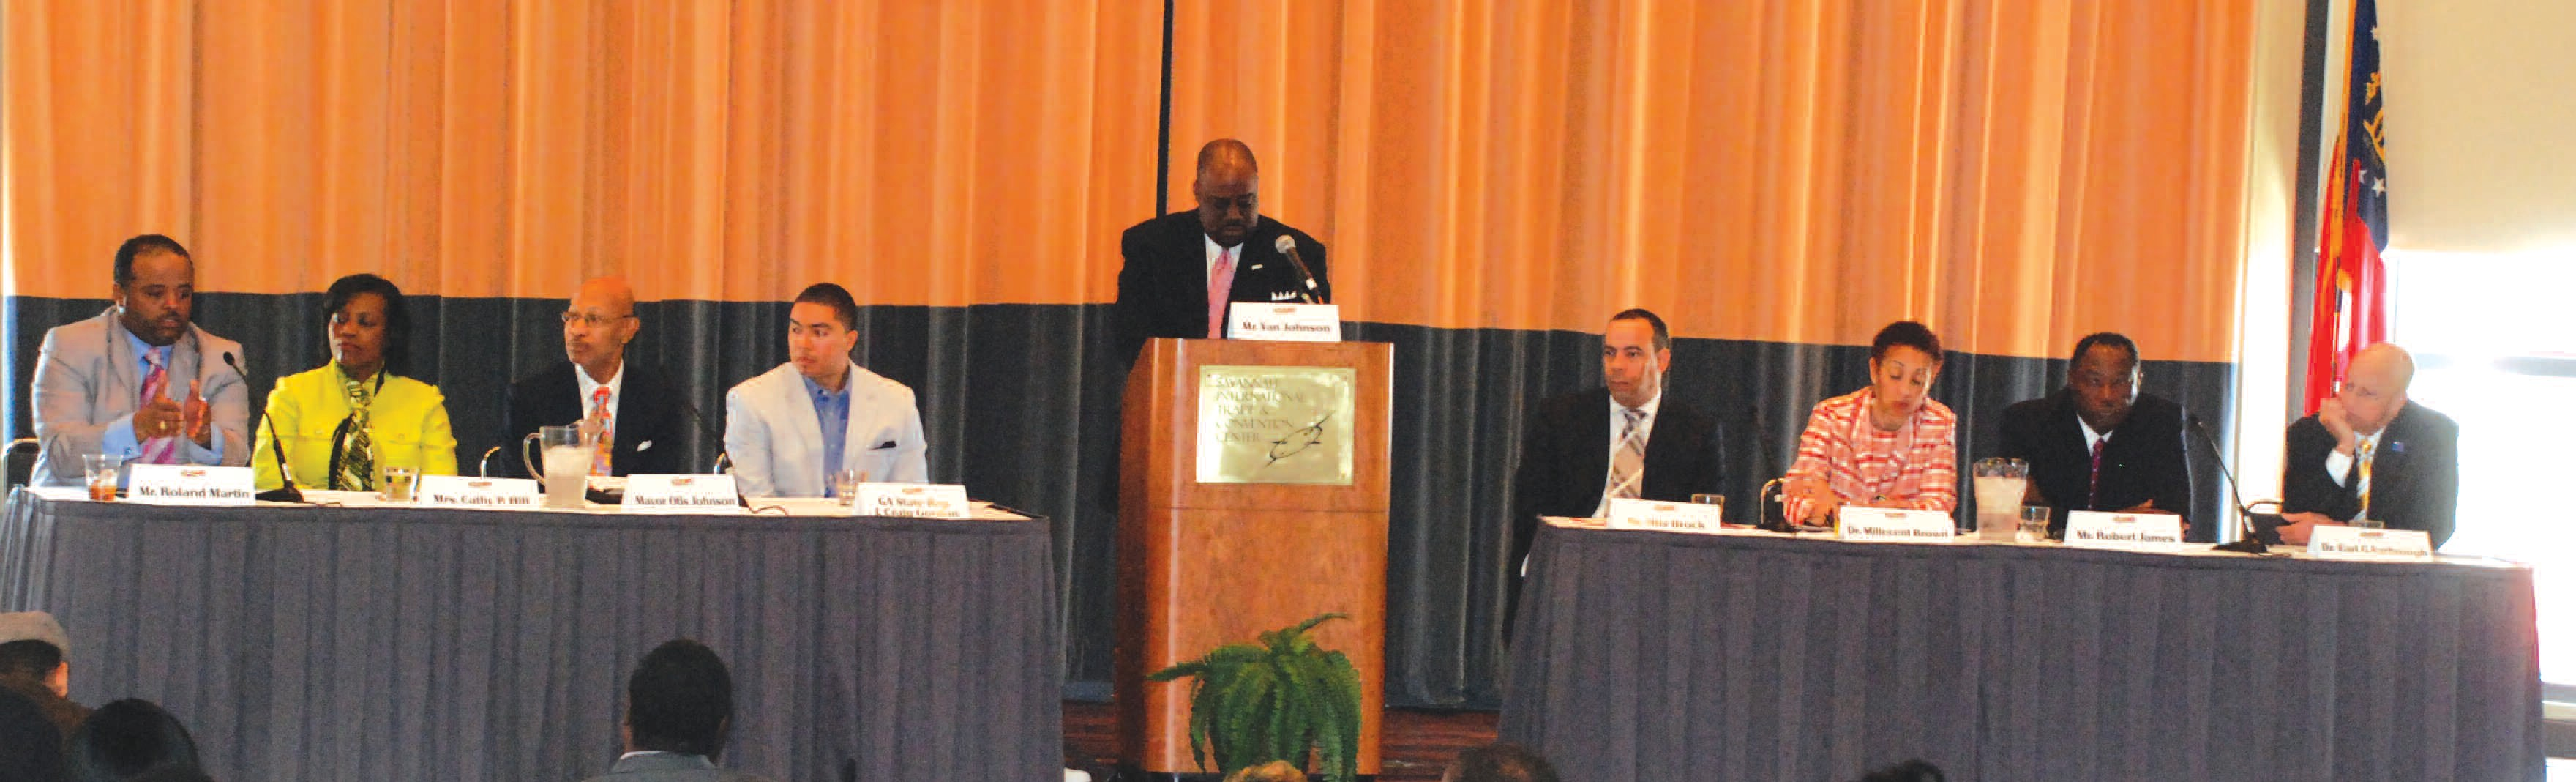 Picture are panelists Roland Martin, Cathy Hill, Mayor Otis Johnson, and Rep. J. Craig Gordon Moderator Alderman Van Johnson. Not shown are Otis Brock, Dr. Millicent Brown, Robert James and Dr. Earl Yarbrough. Photo courtesy of Sirens Images